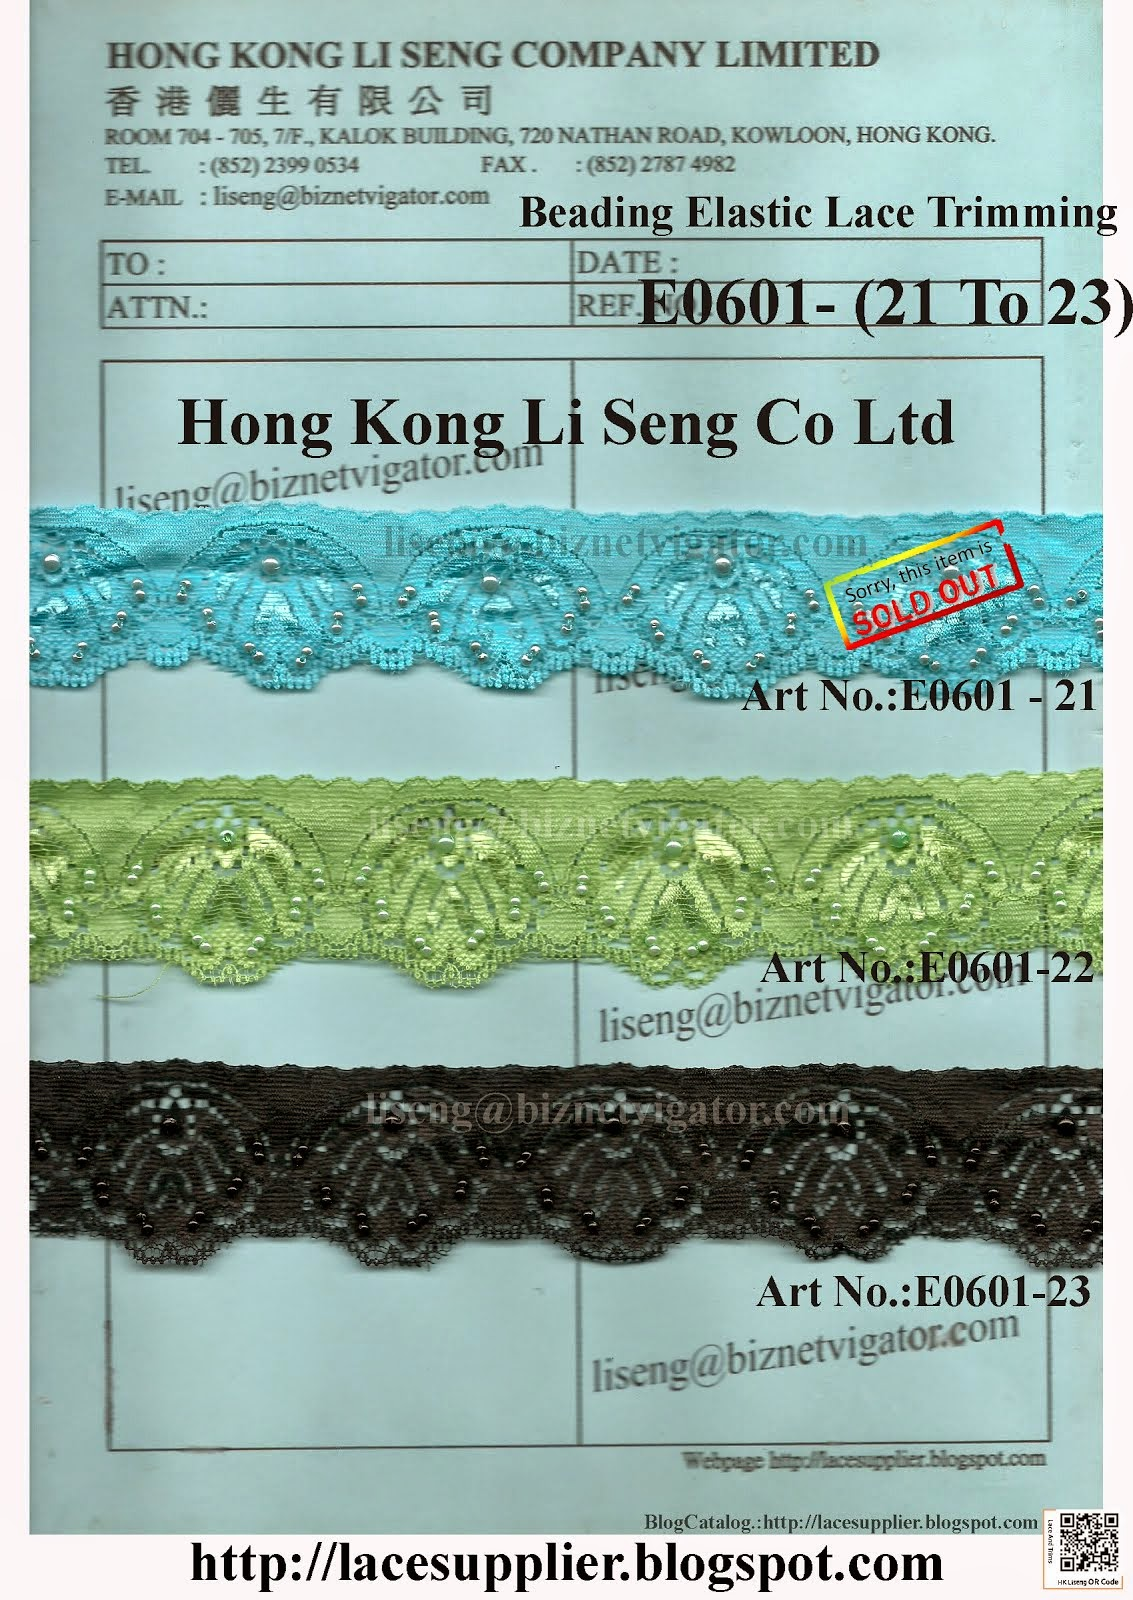 Beading Elastic Lace Trimming Supplier - Hong Kong Li Seng Co Ltd